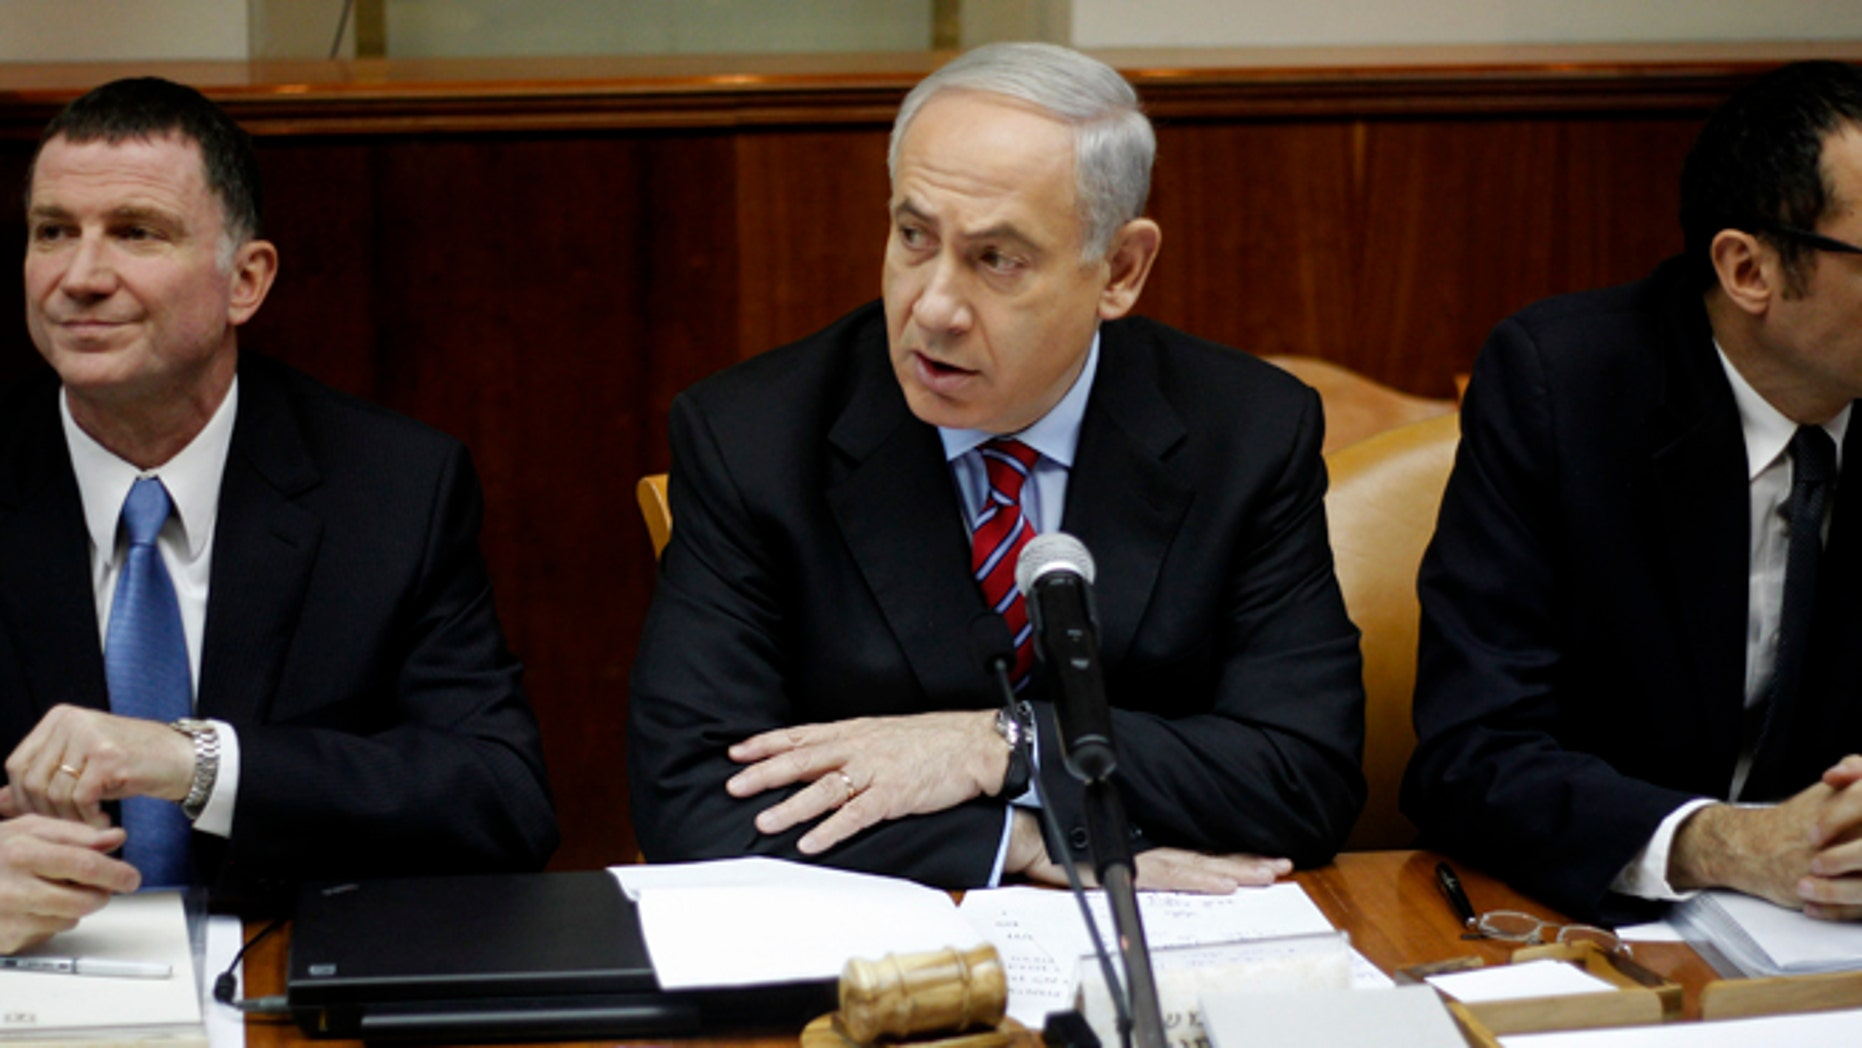 Jan. 27, 2013: Israeli Prime Minister Benjamin Netanyahu, center, heads the weekly Cabinet meeting at his Jerusalem office. Sitting left is Cabinet minister Yuli Edelstein.